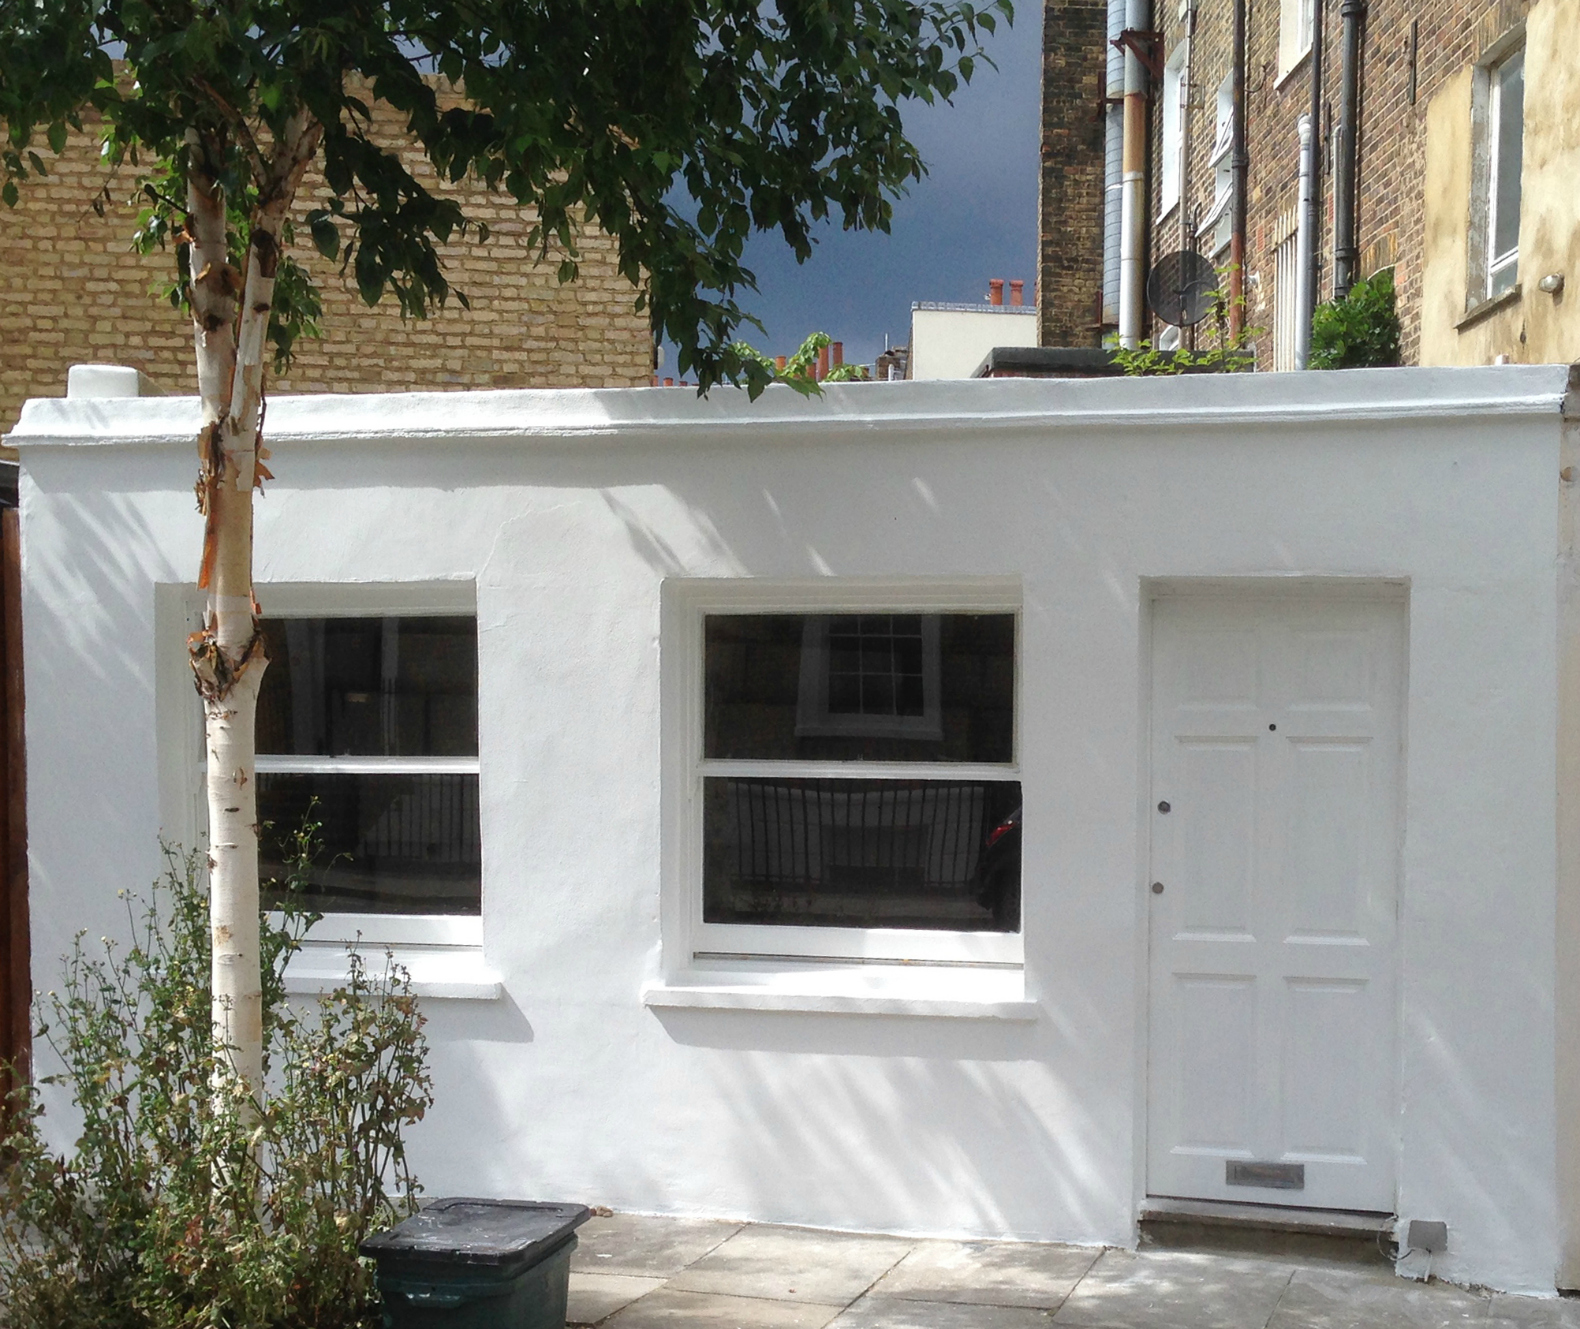 London's 'smallest house' uses flexible plywood furniture to ... on floor home designs, wood home designs, vinyl home designs, paint home designs, exterior siding home designs, small home designs, containers home designs, warehouse home designs, cement home designs, stone home designs, brick home designs, structural insulated panel home designs, wallpaper home designs, post frame home designs, flooring home designs, gable roof home designs, building home designs, metal home designs, kitchen home designs, timber home designs,